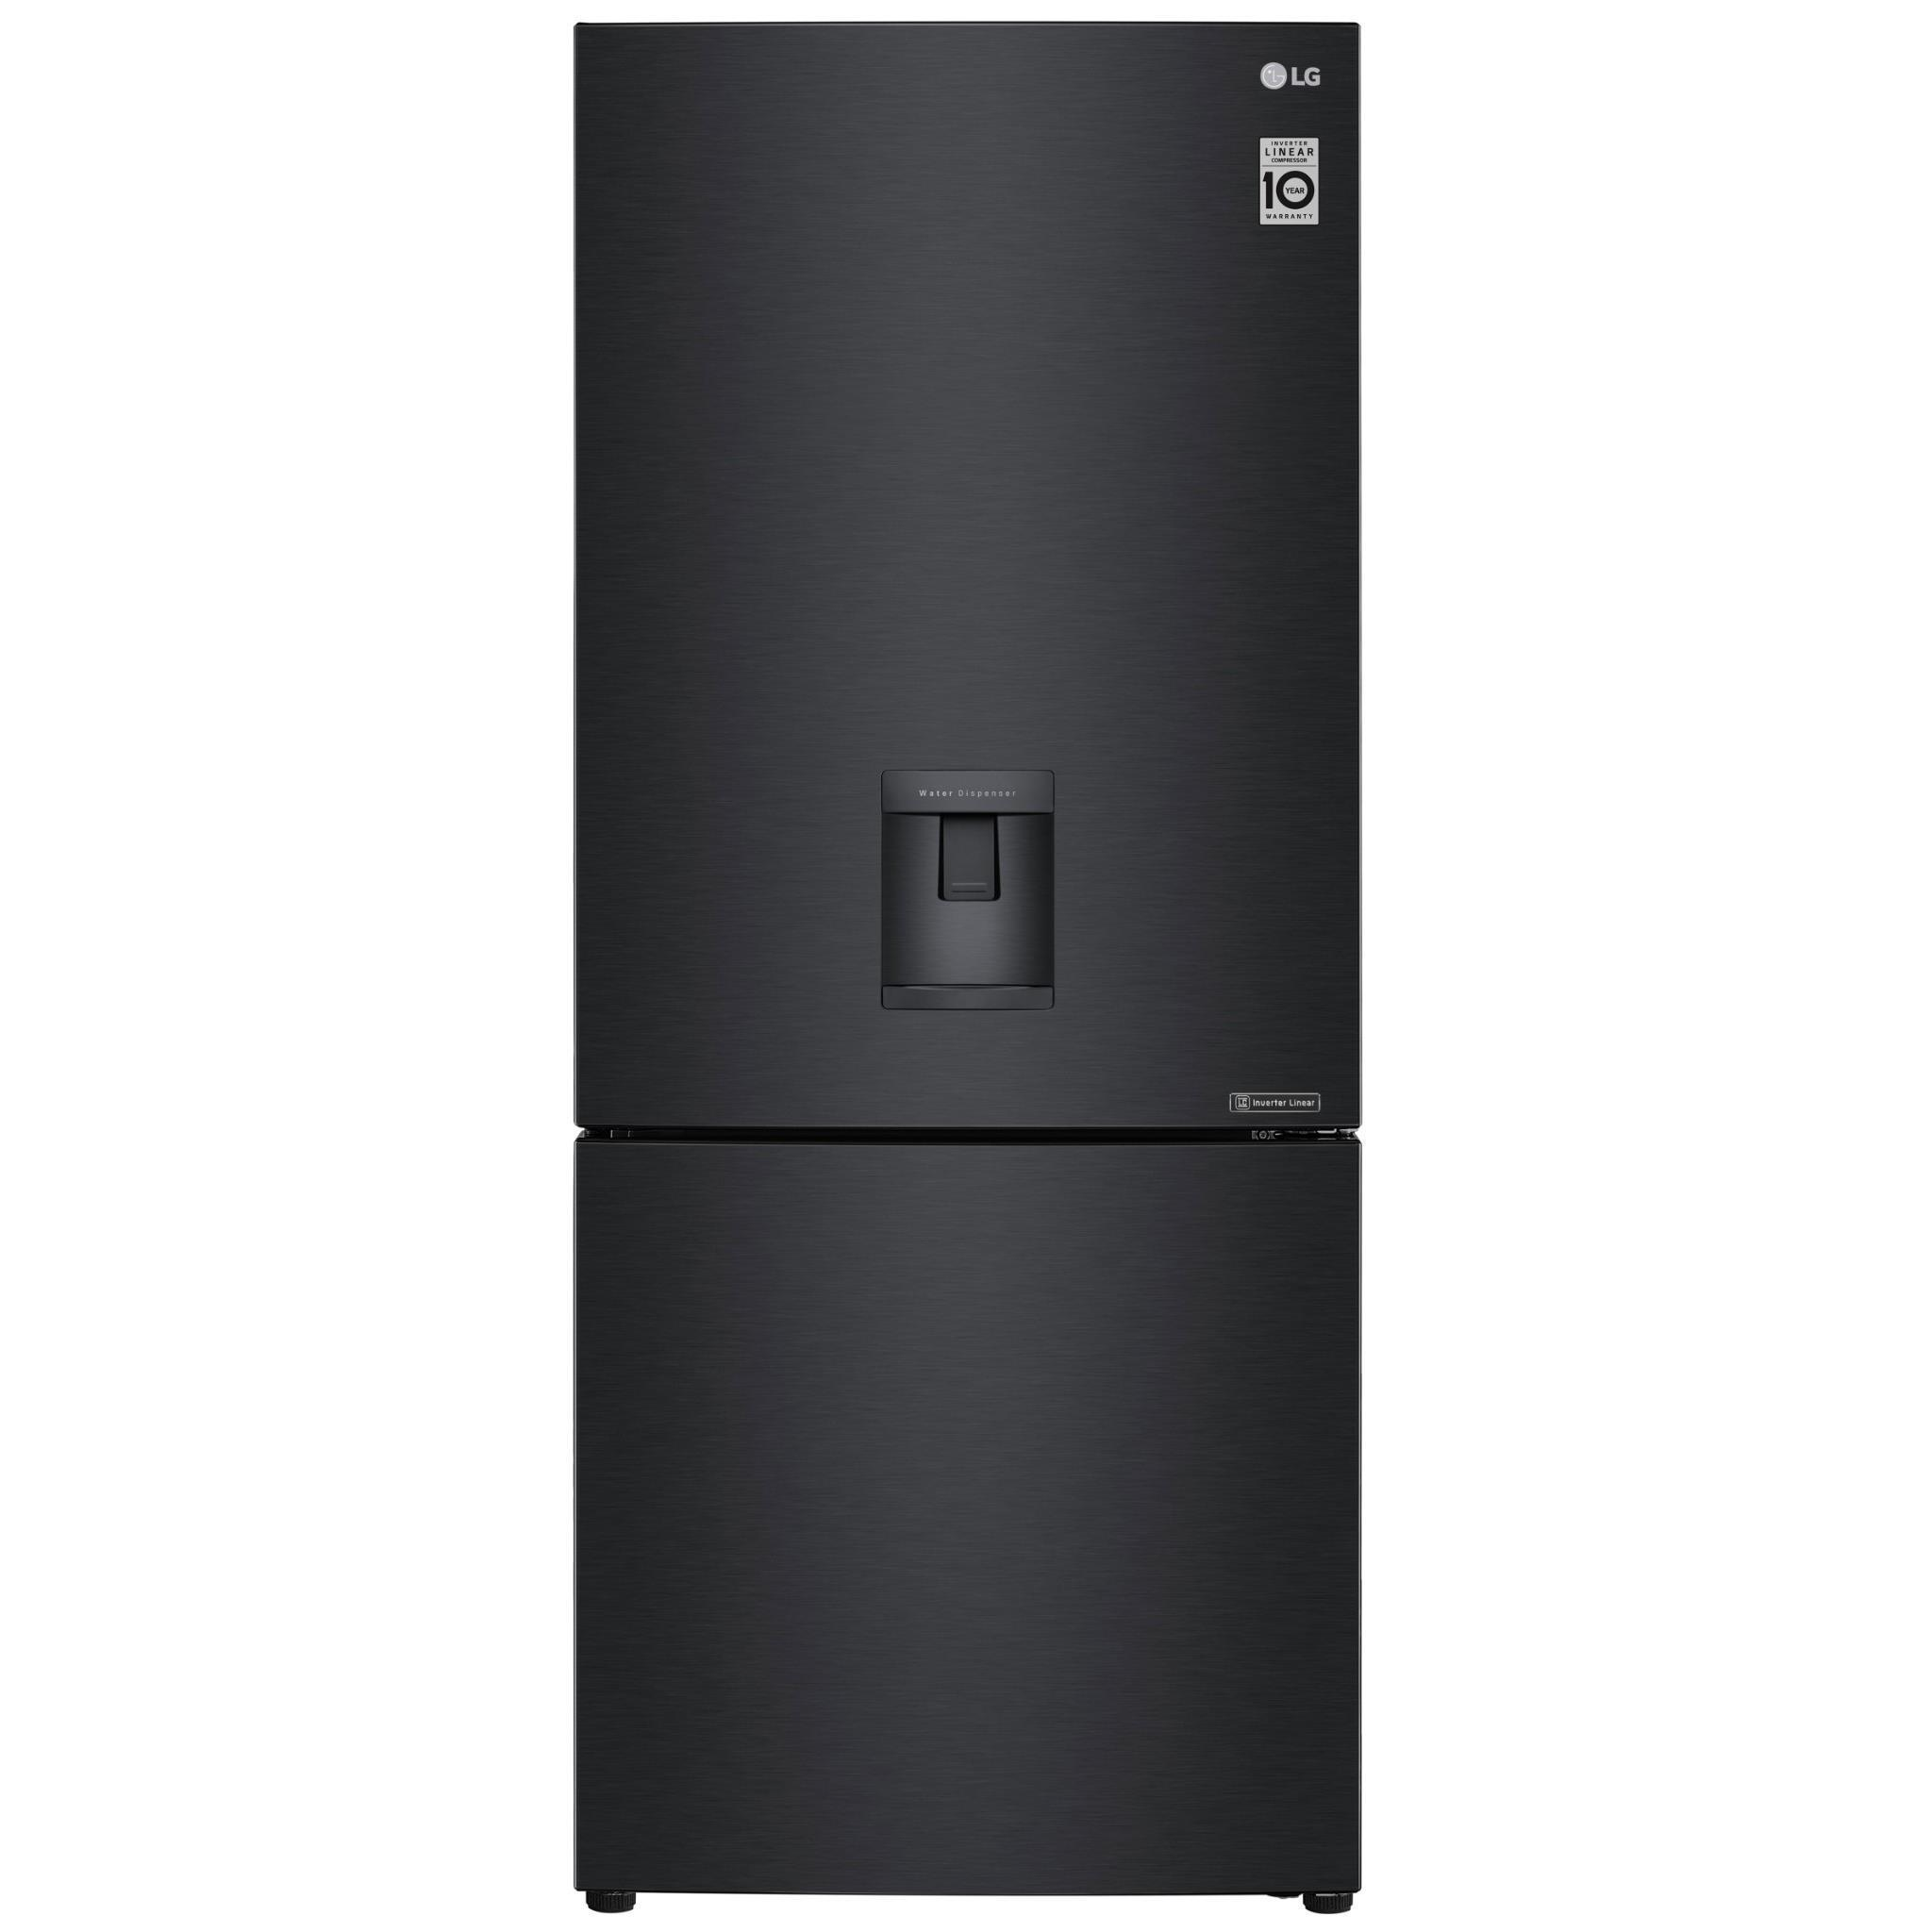 LG GBW455MBL 454L Bottom Mount Fridge (Matte Black)